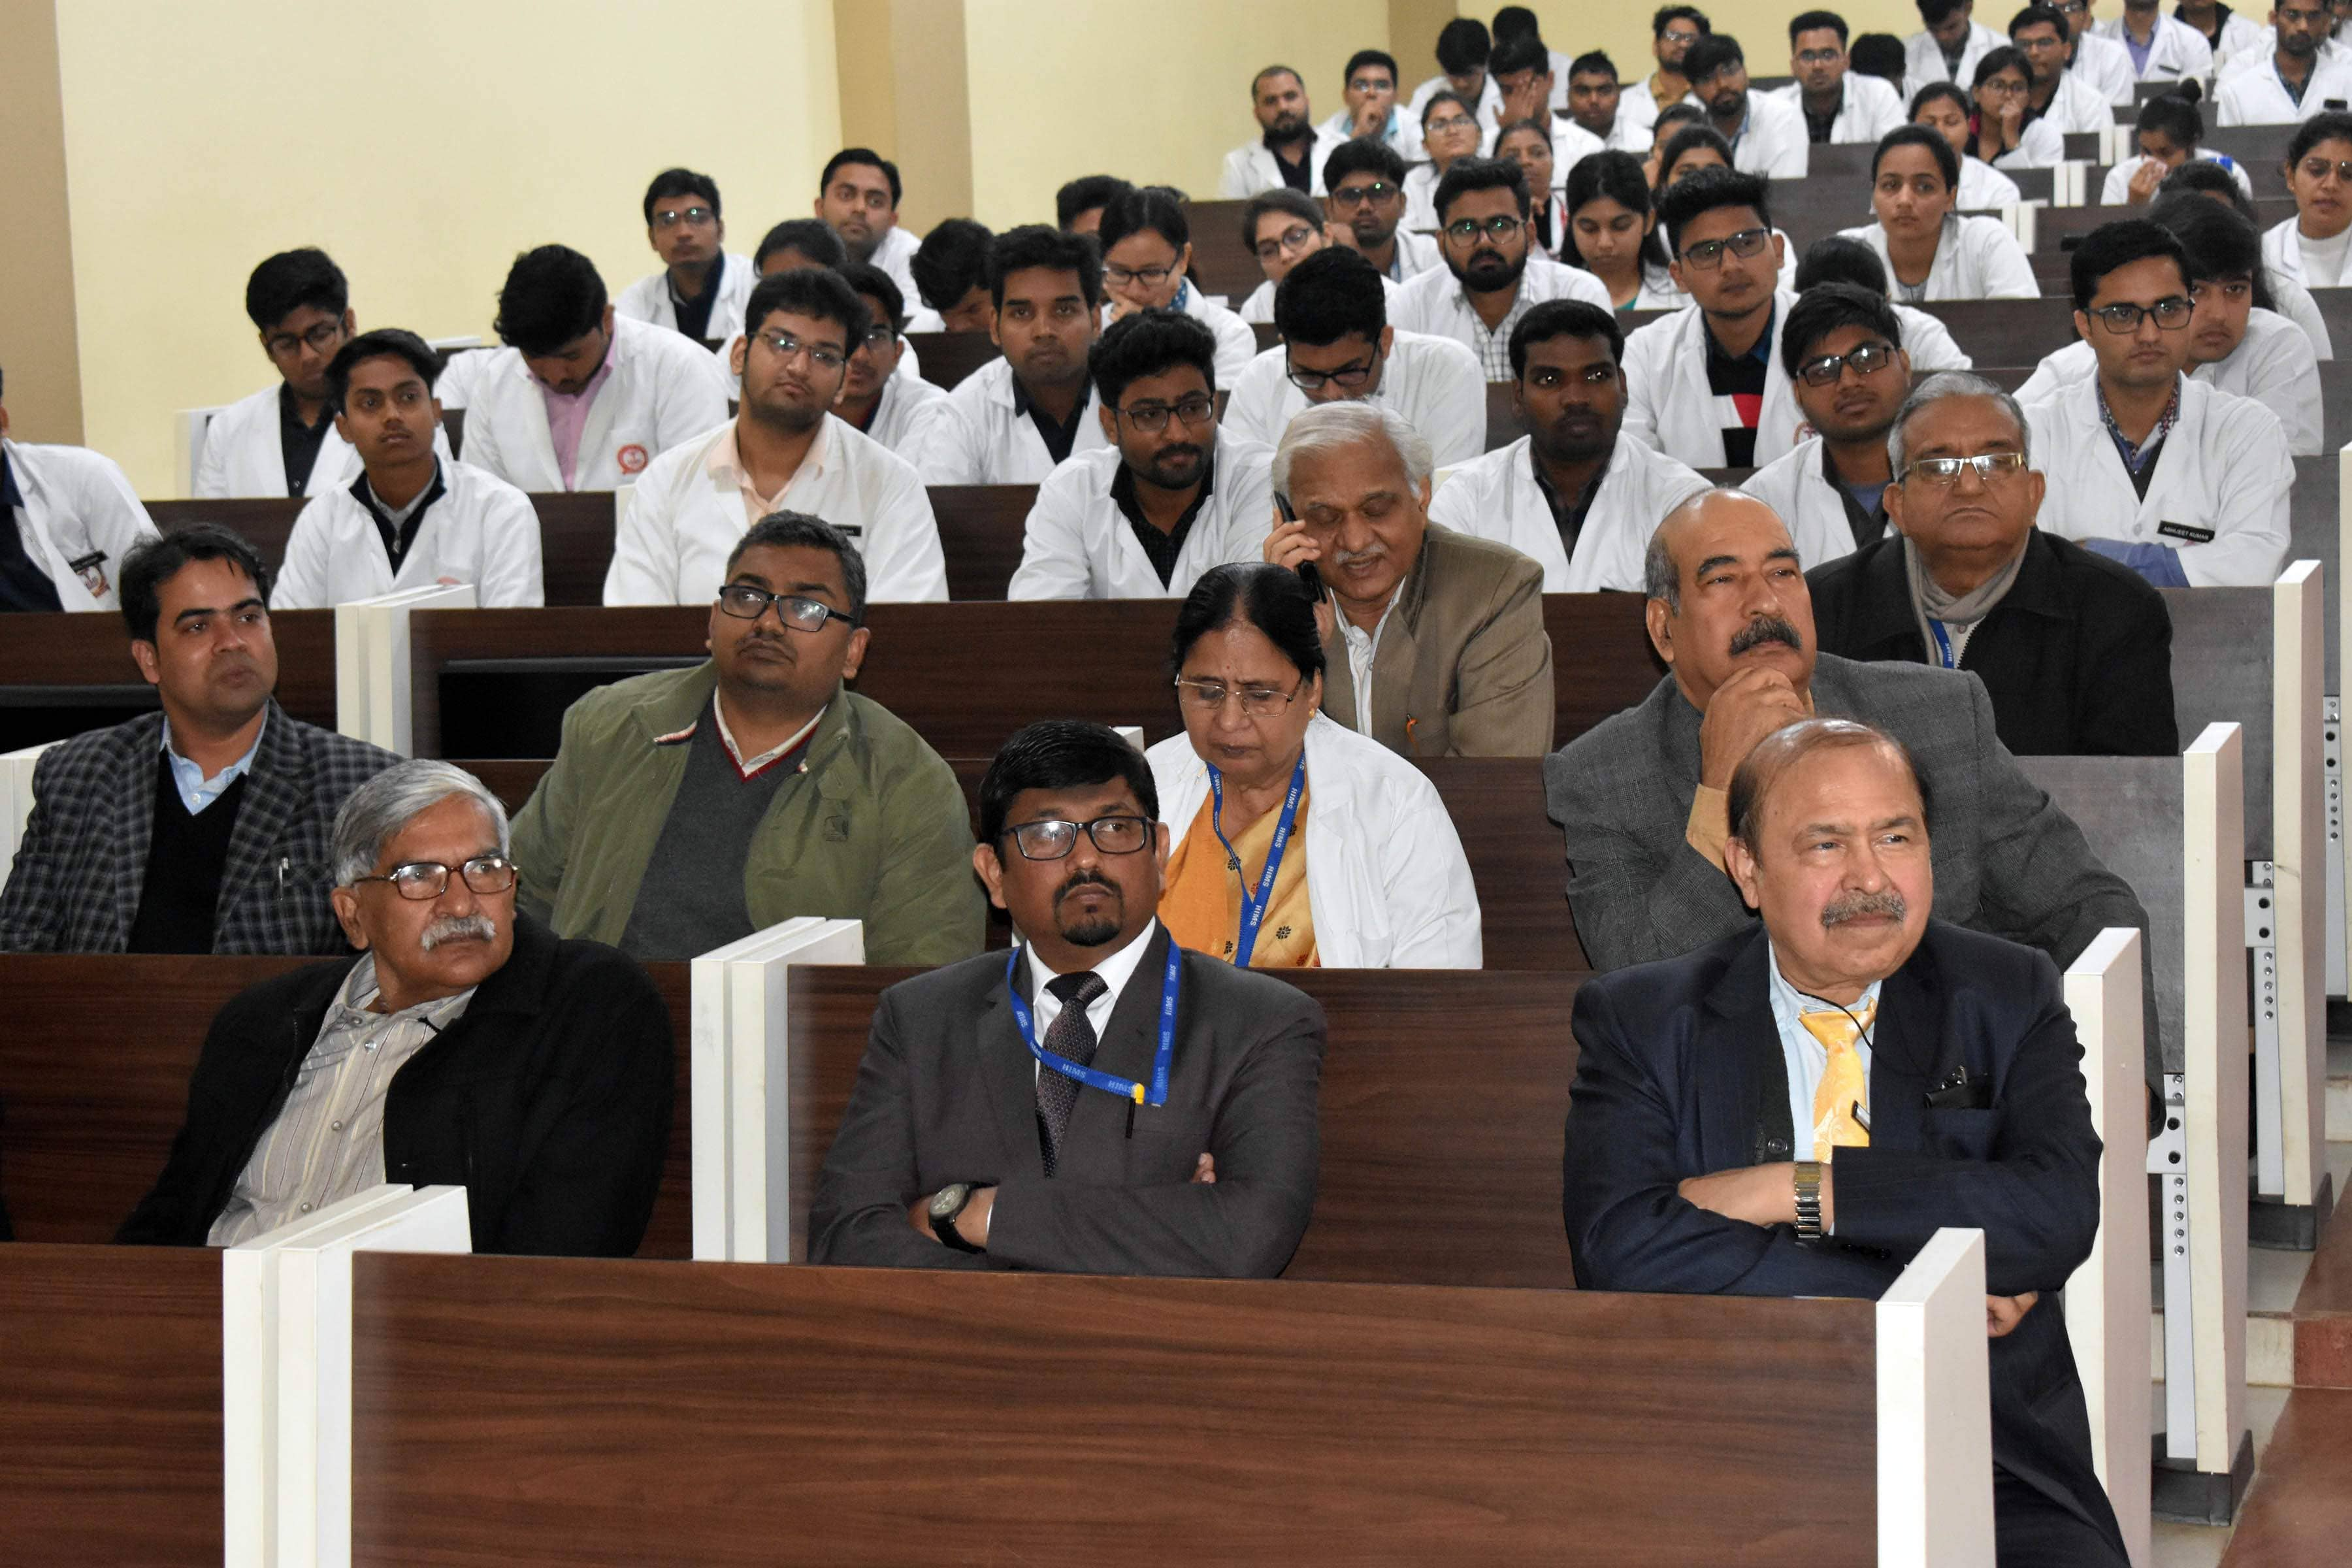 FIGO undertakes capacity building of medical and nursing students of The Heritage Institute of Medical Sciences @ Varanasi on 30th January 2020.